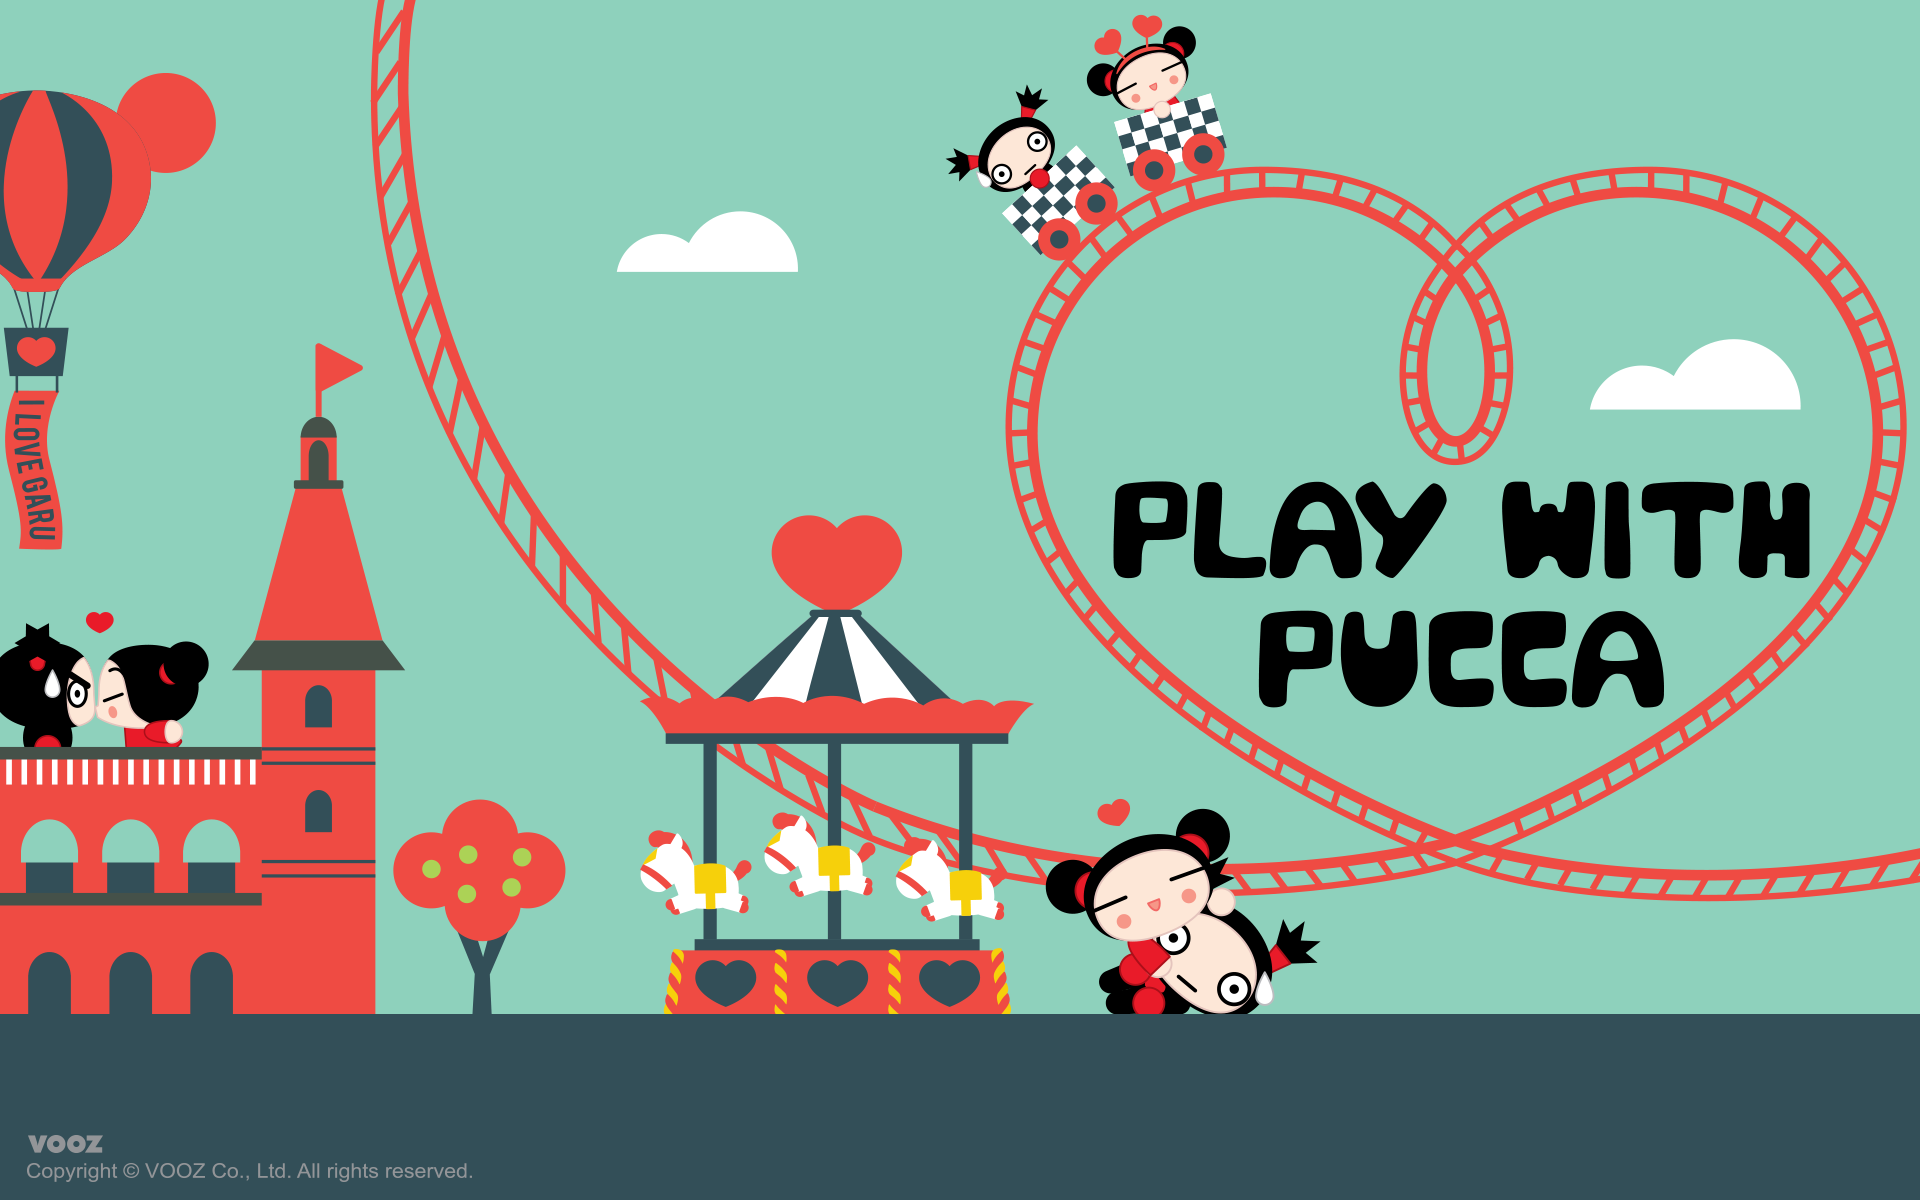 Play with Pucca